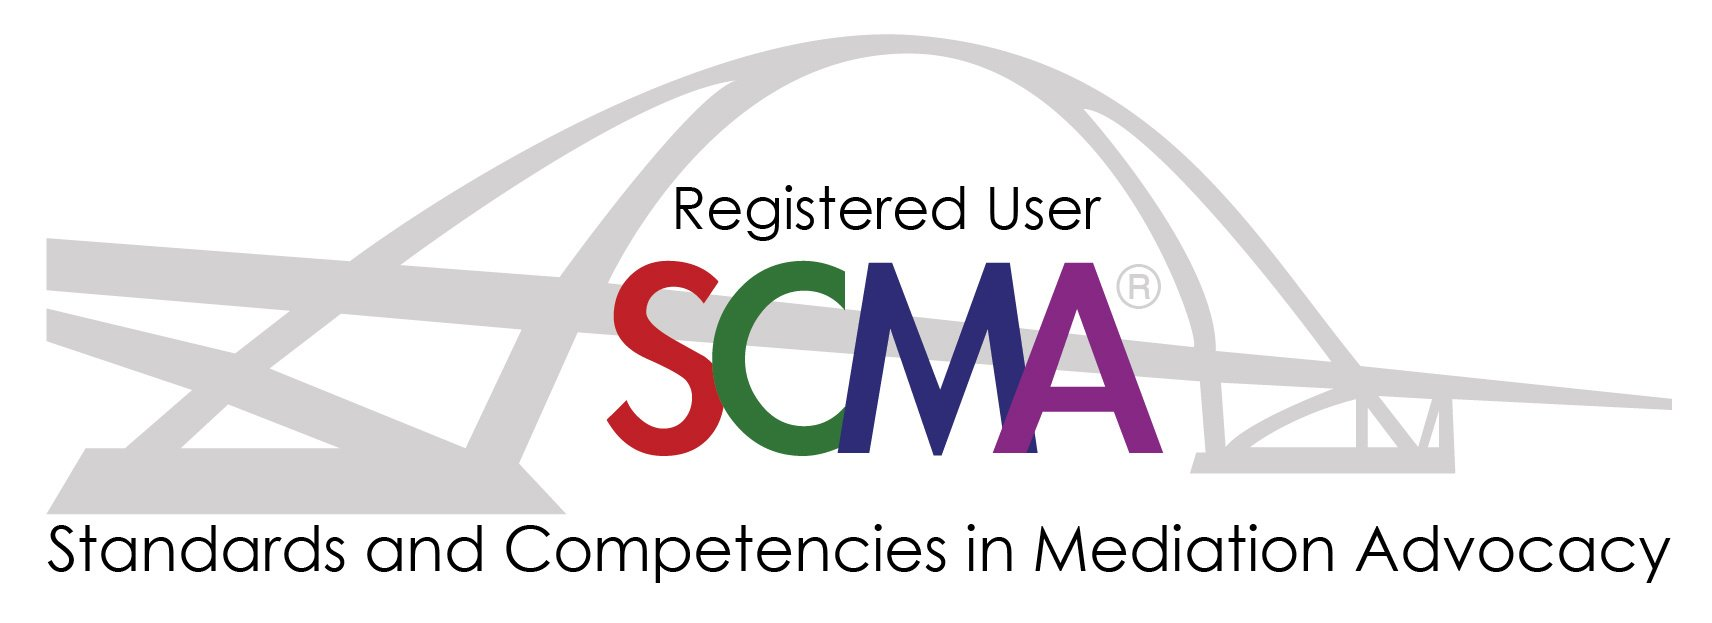 Registered user Standards and Competencies in Mediation Advocacy